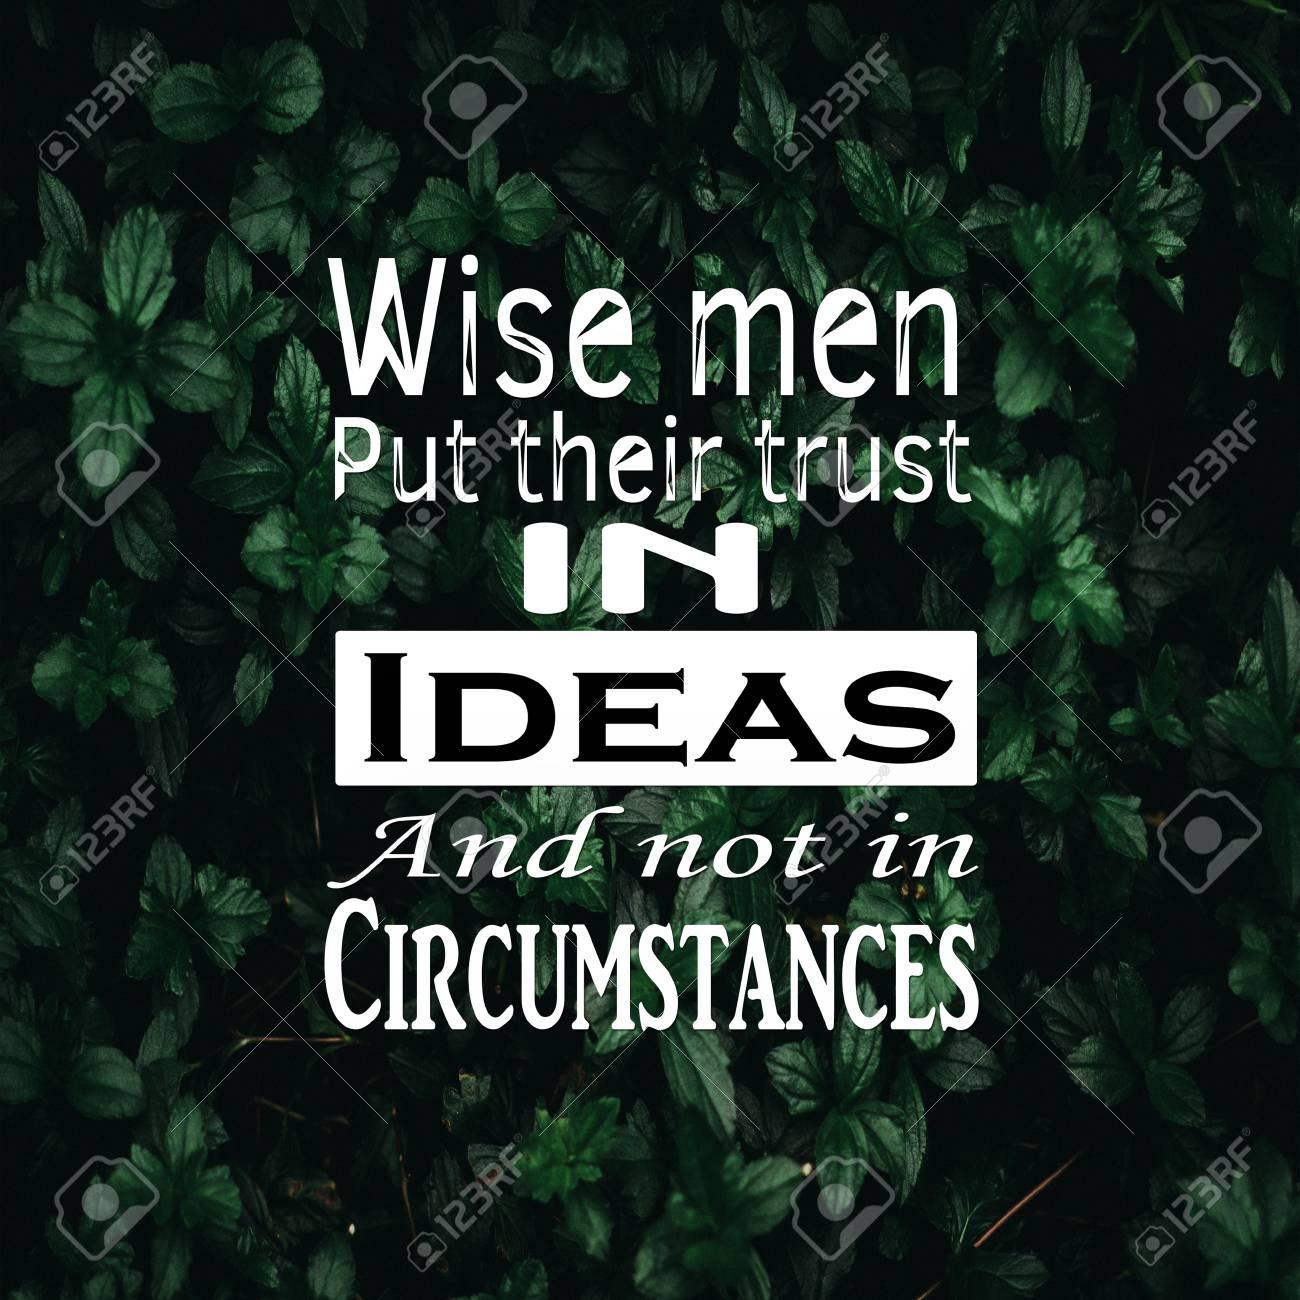 Inspirational Quotes wise men put their trust in ideas and not..